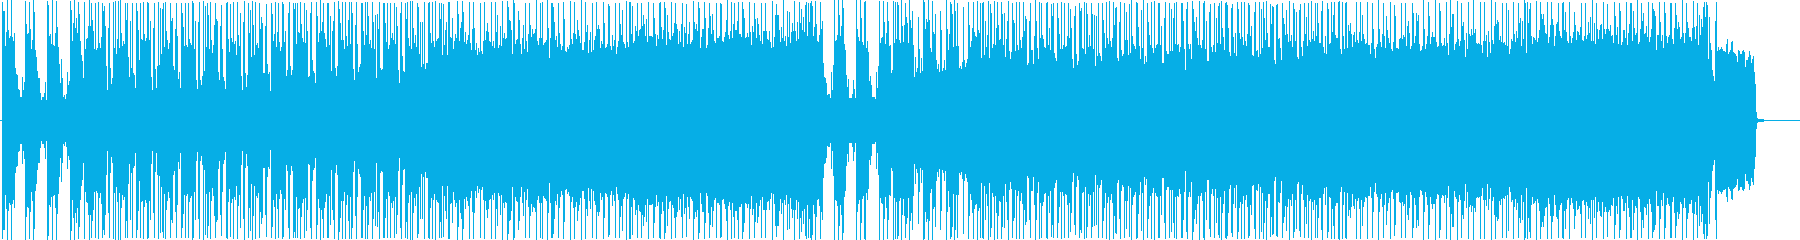 Metal BGM in the image of battle's reproduced waveform